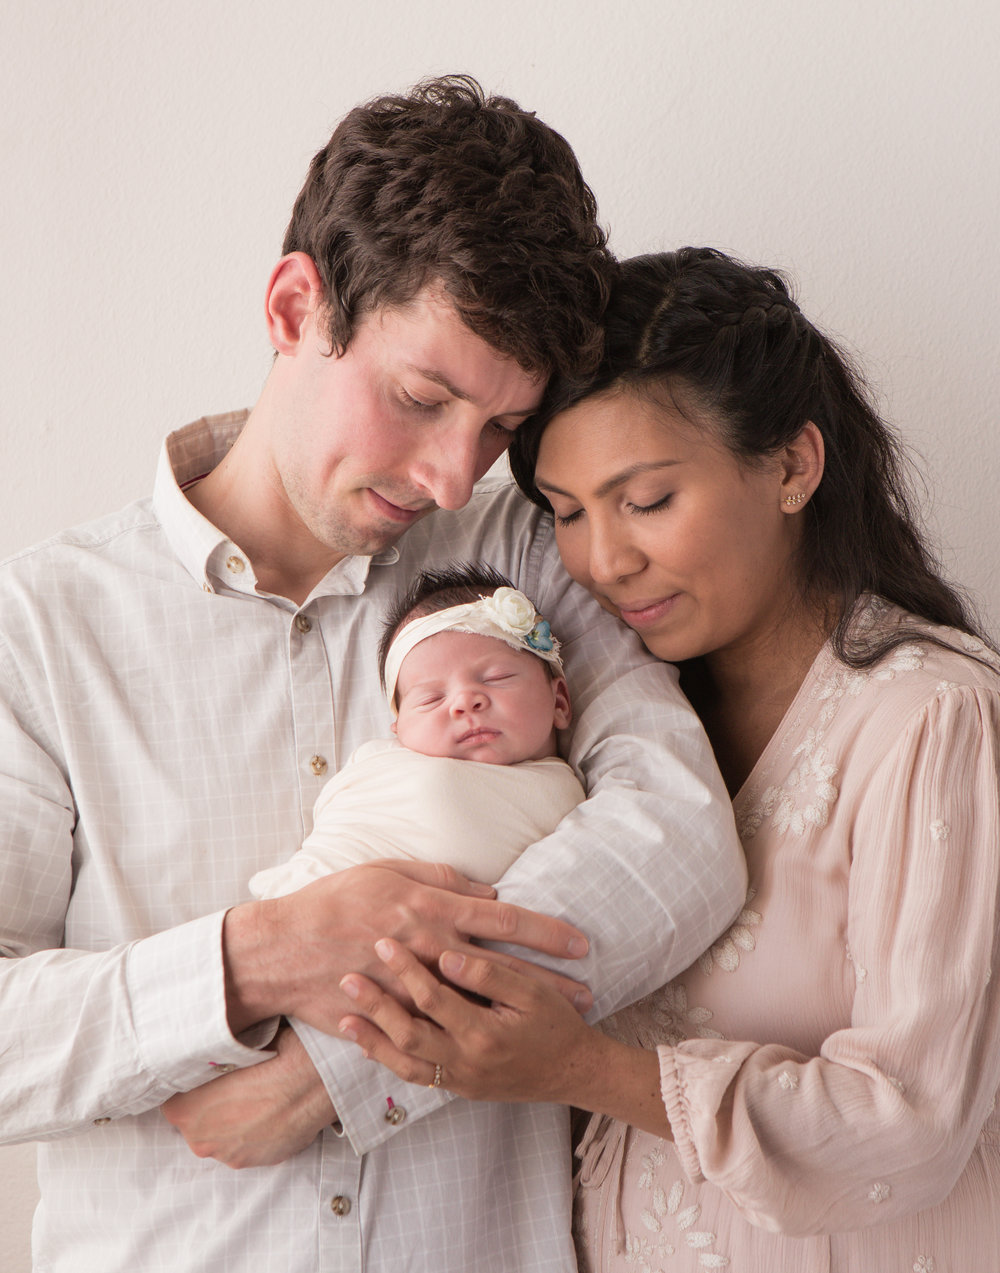 simple neutral family professional photo with newborn